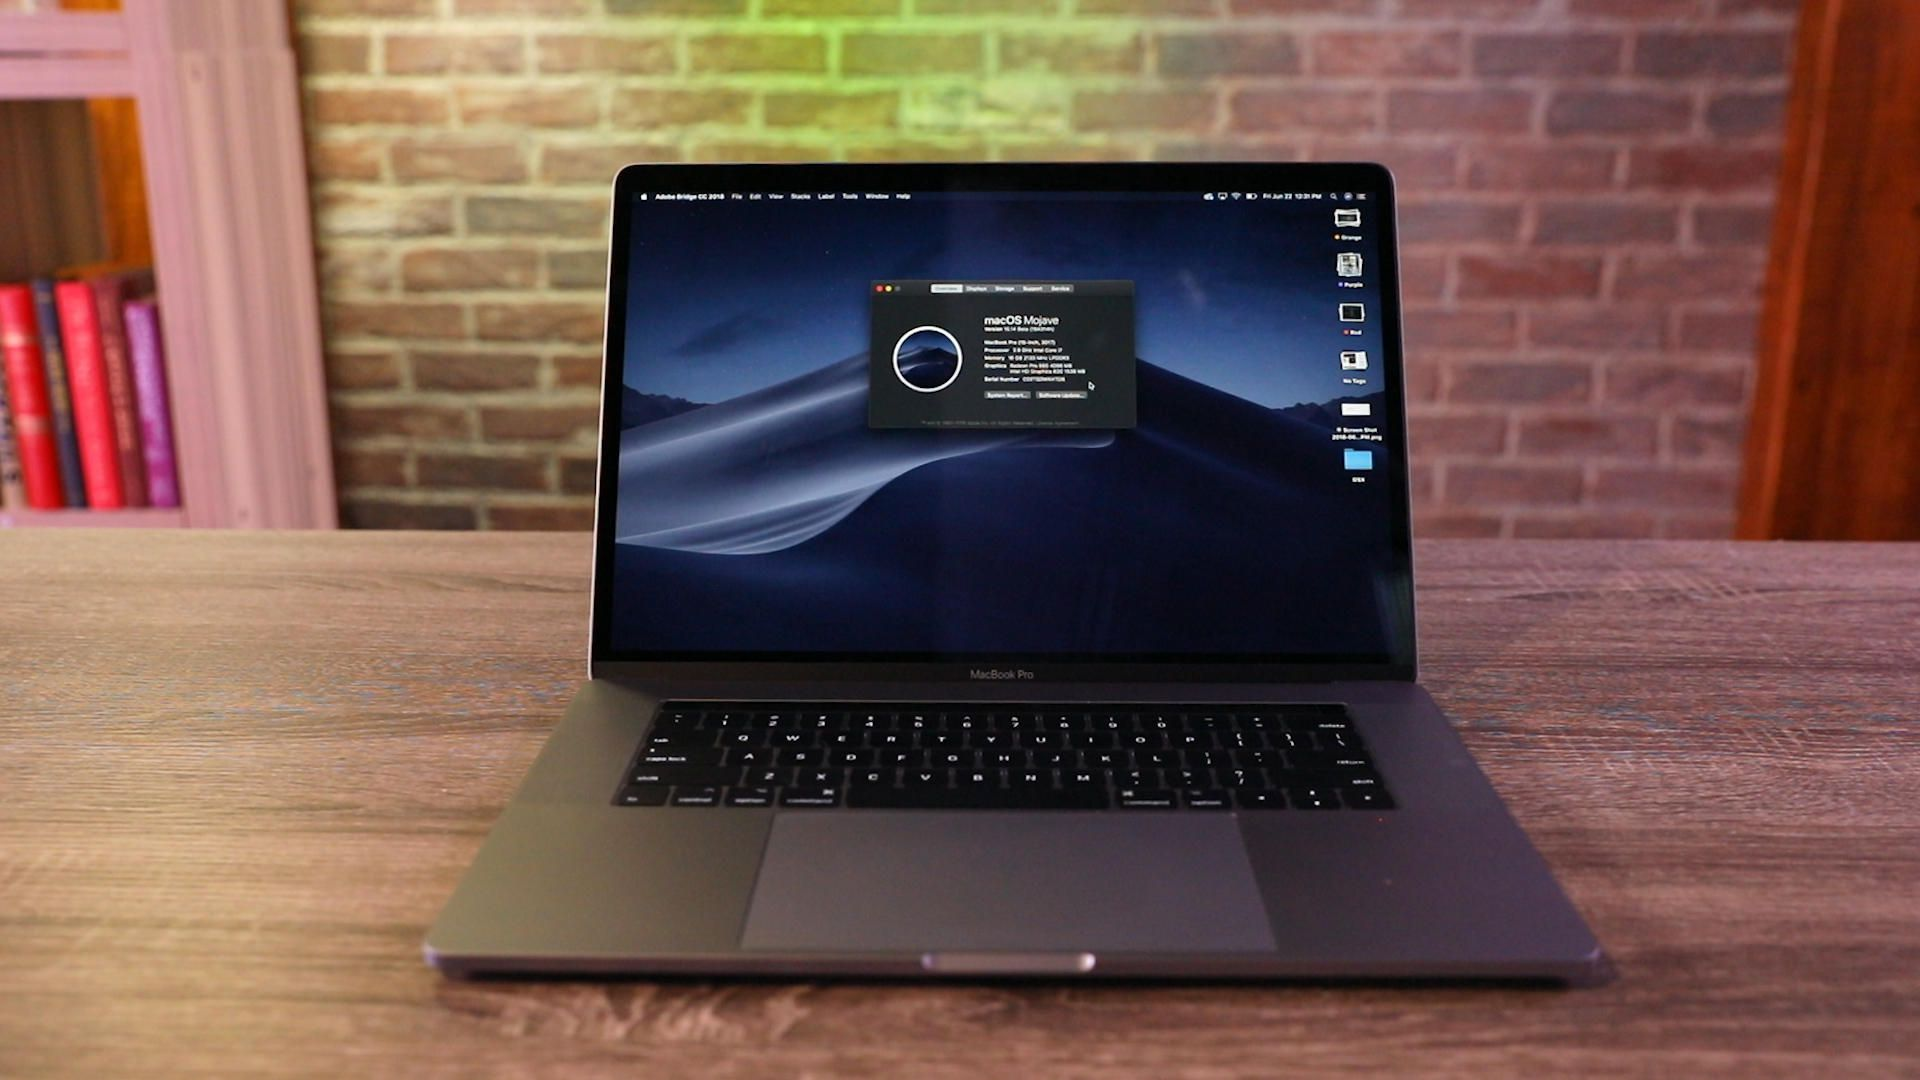 Having problems with macOS Mojave? Here is the fix